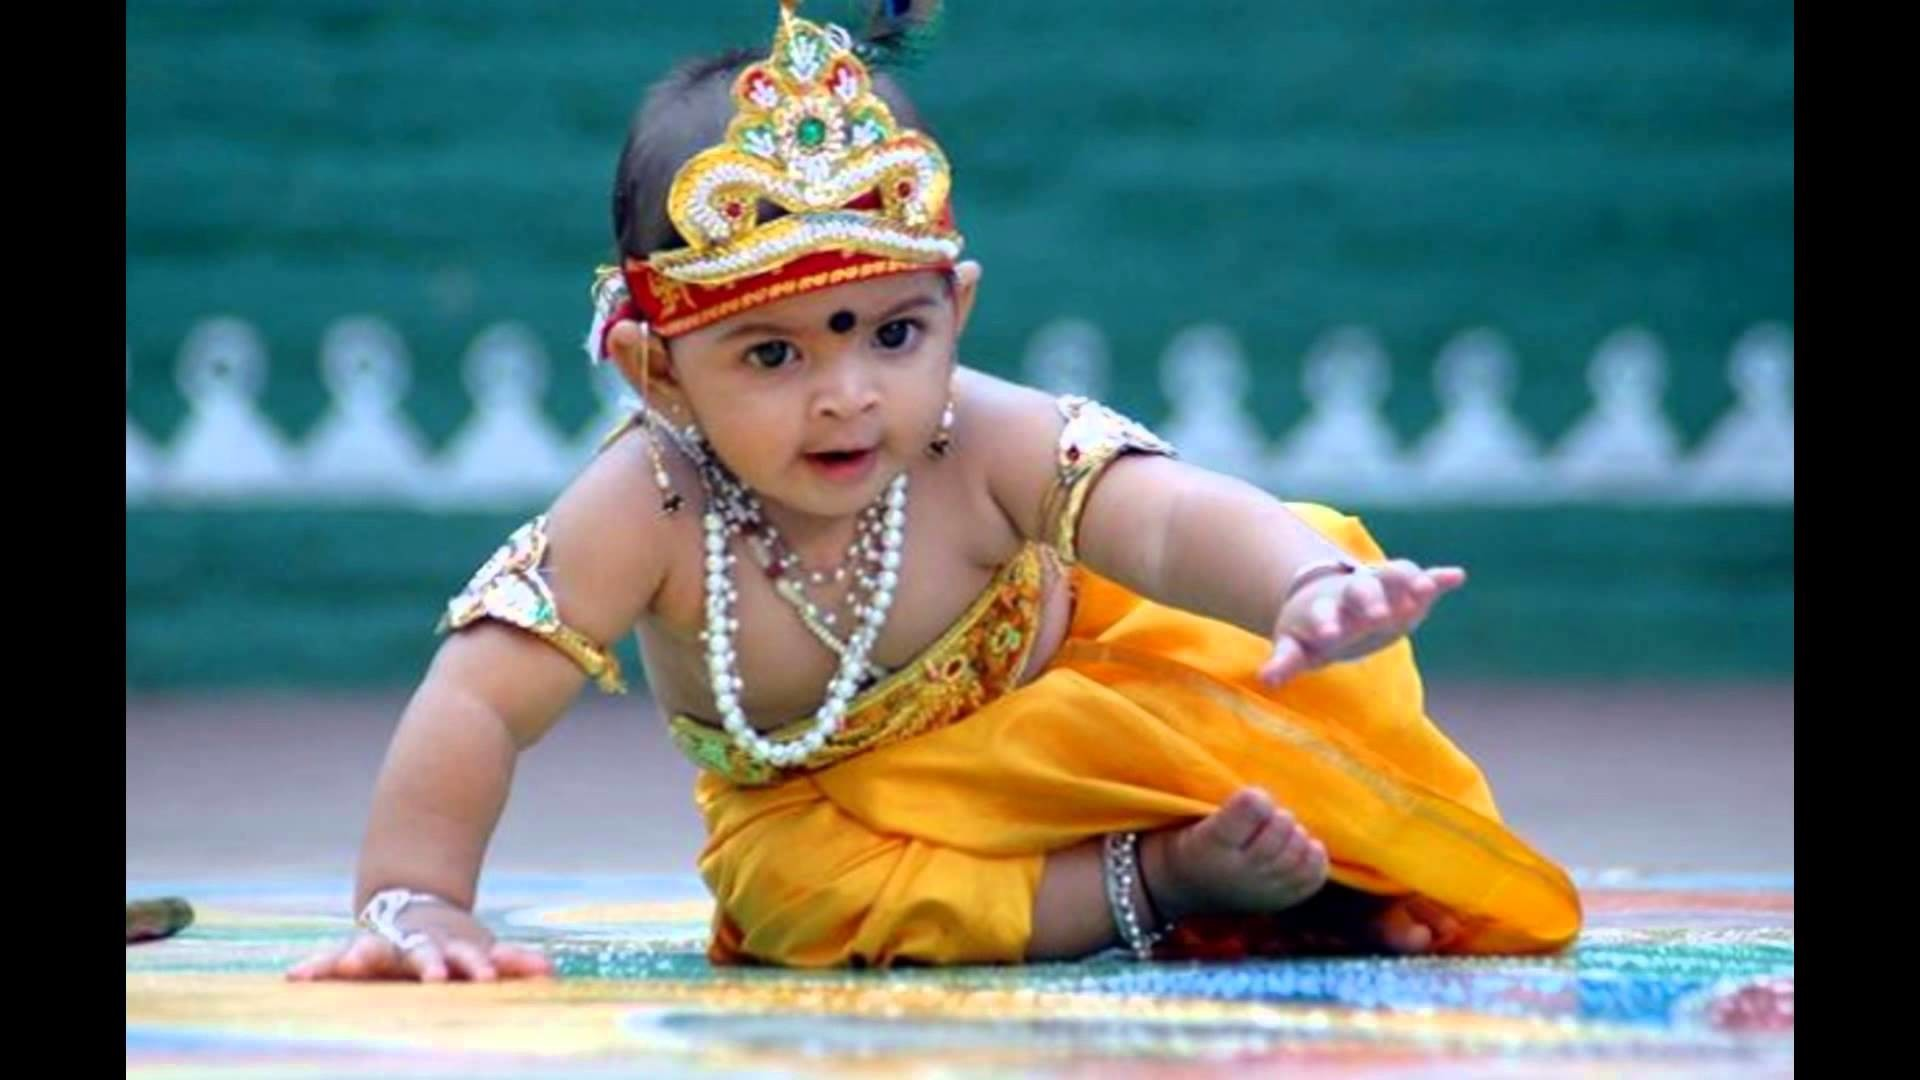 Try These Cute Baby Krishna Hd Wallpaper Download {Mahindra